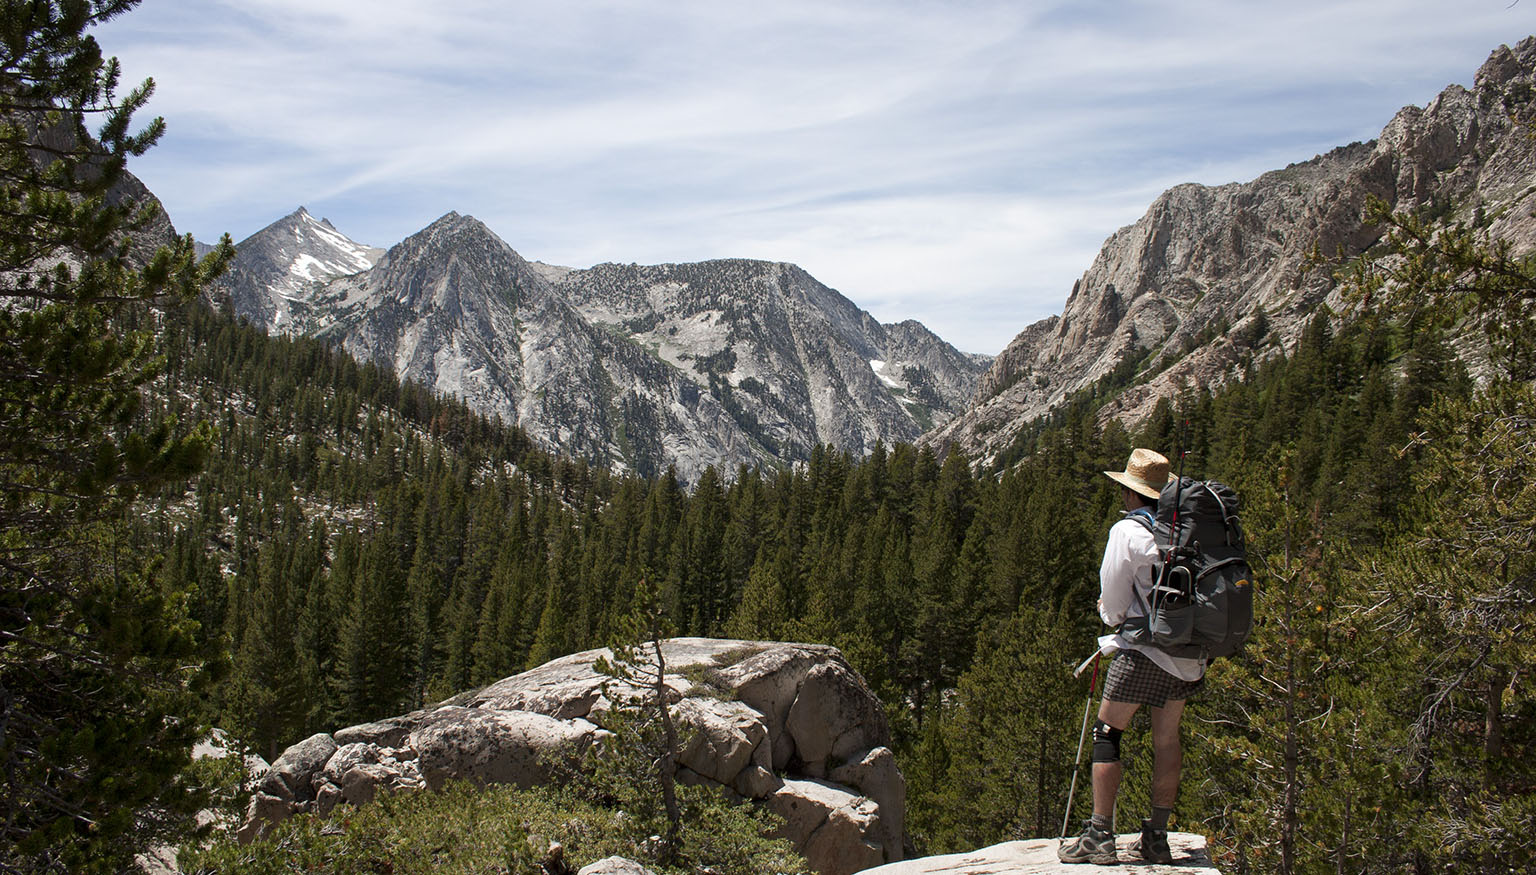 Overlooking Bubbs Canyon